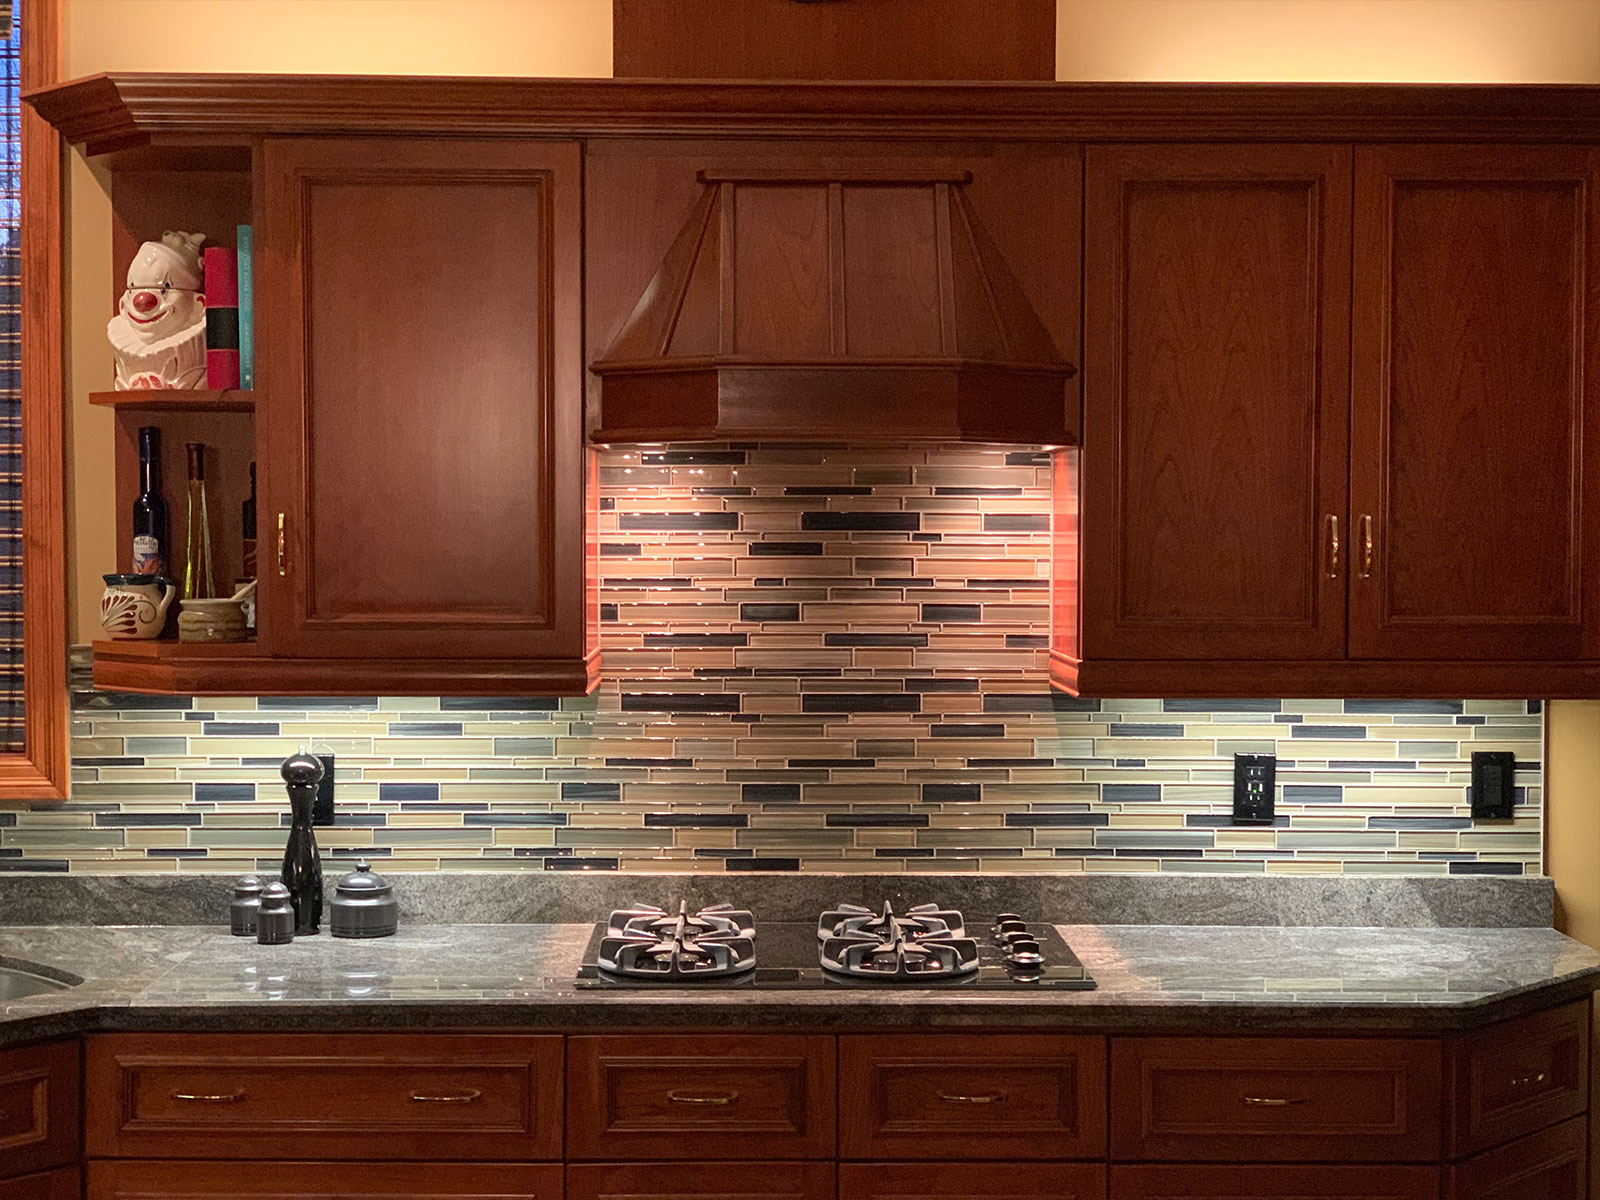 Cherry cabinets with glass back splash and granite countertop